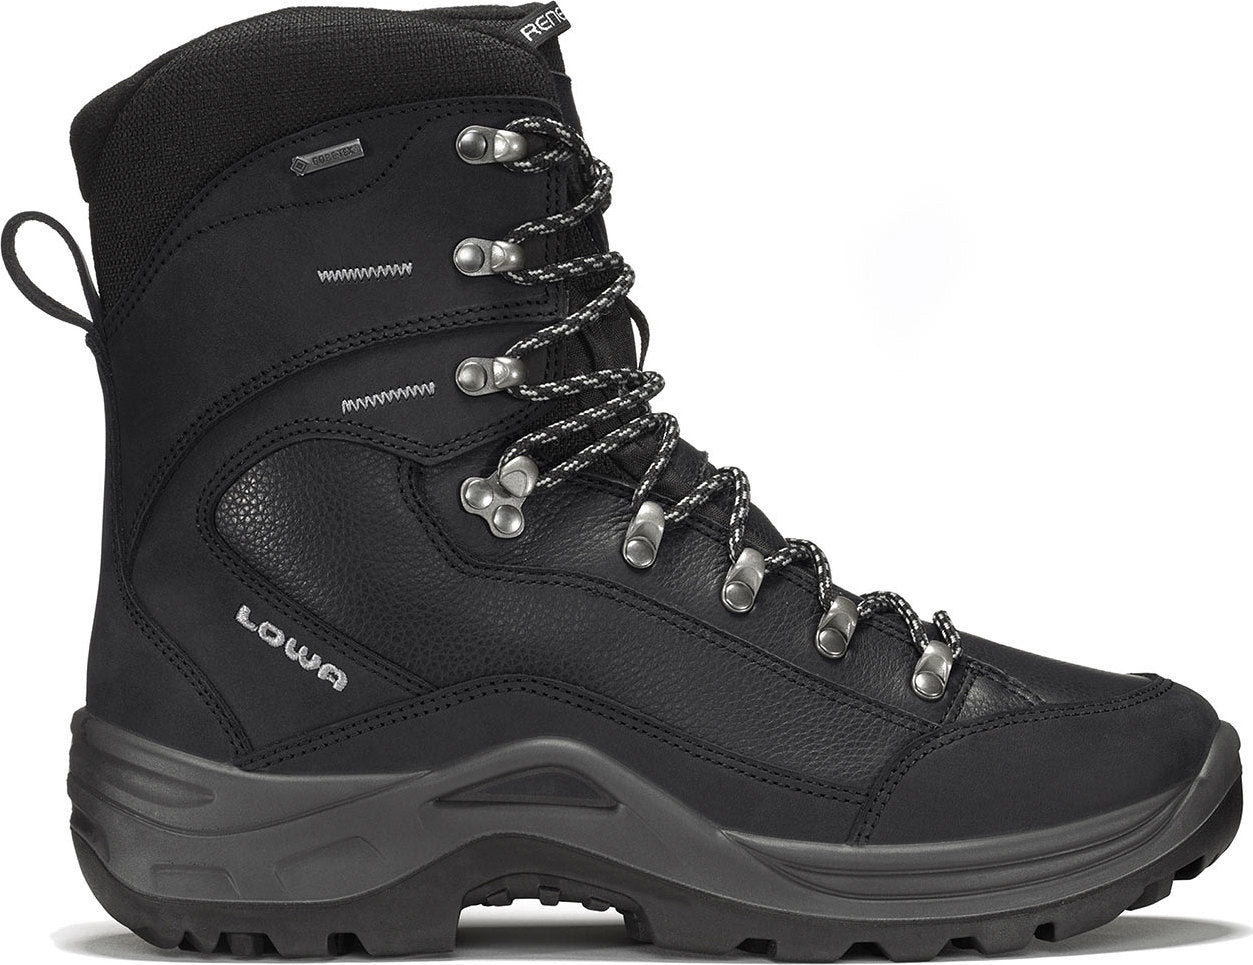 ea8032bed5b Men's Renegade Ice GTX G3 Insulated Boots -13F/-25C